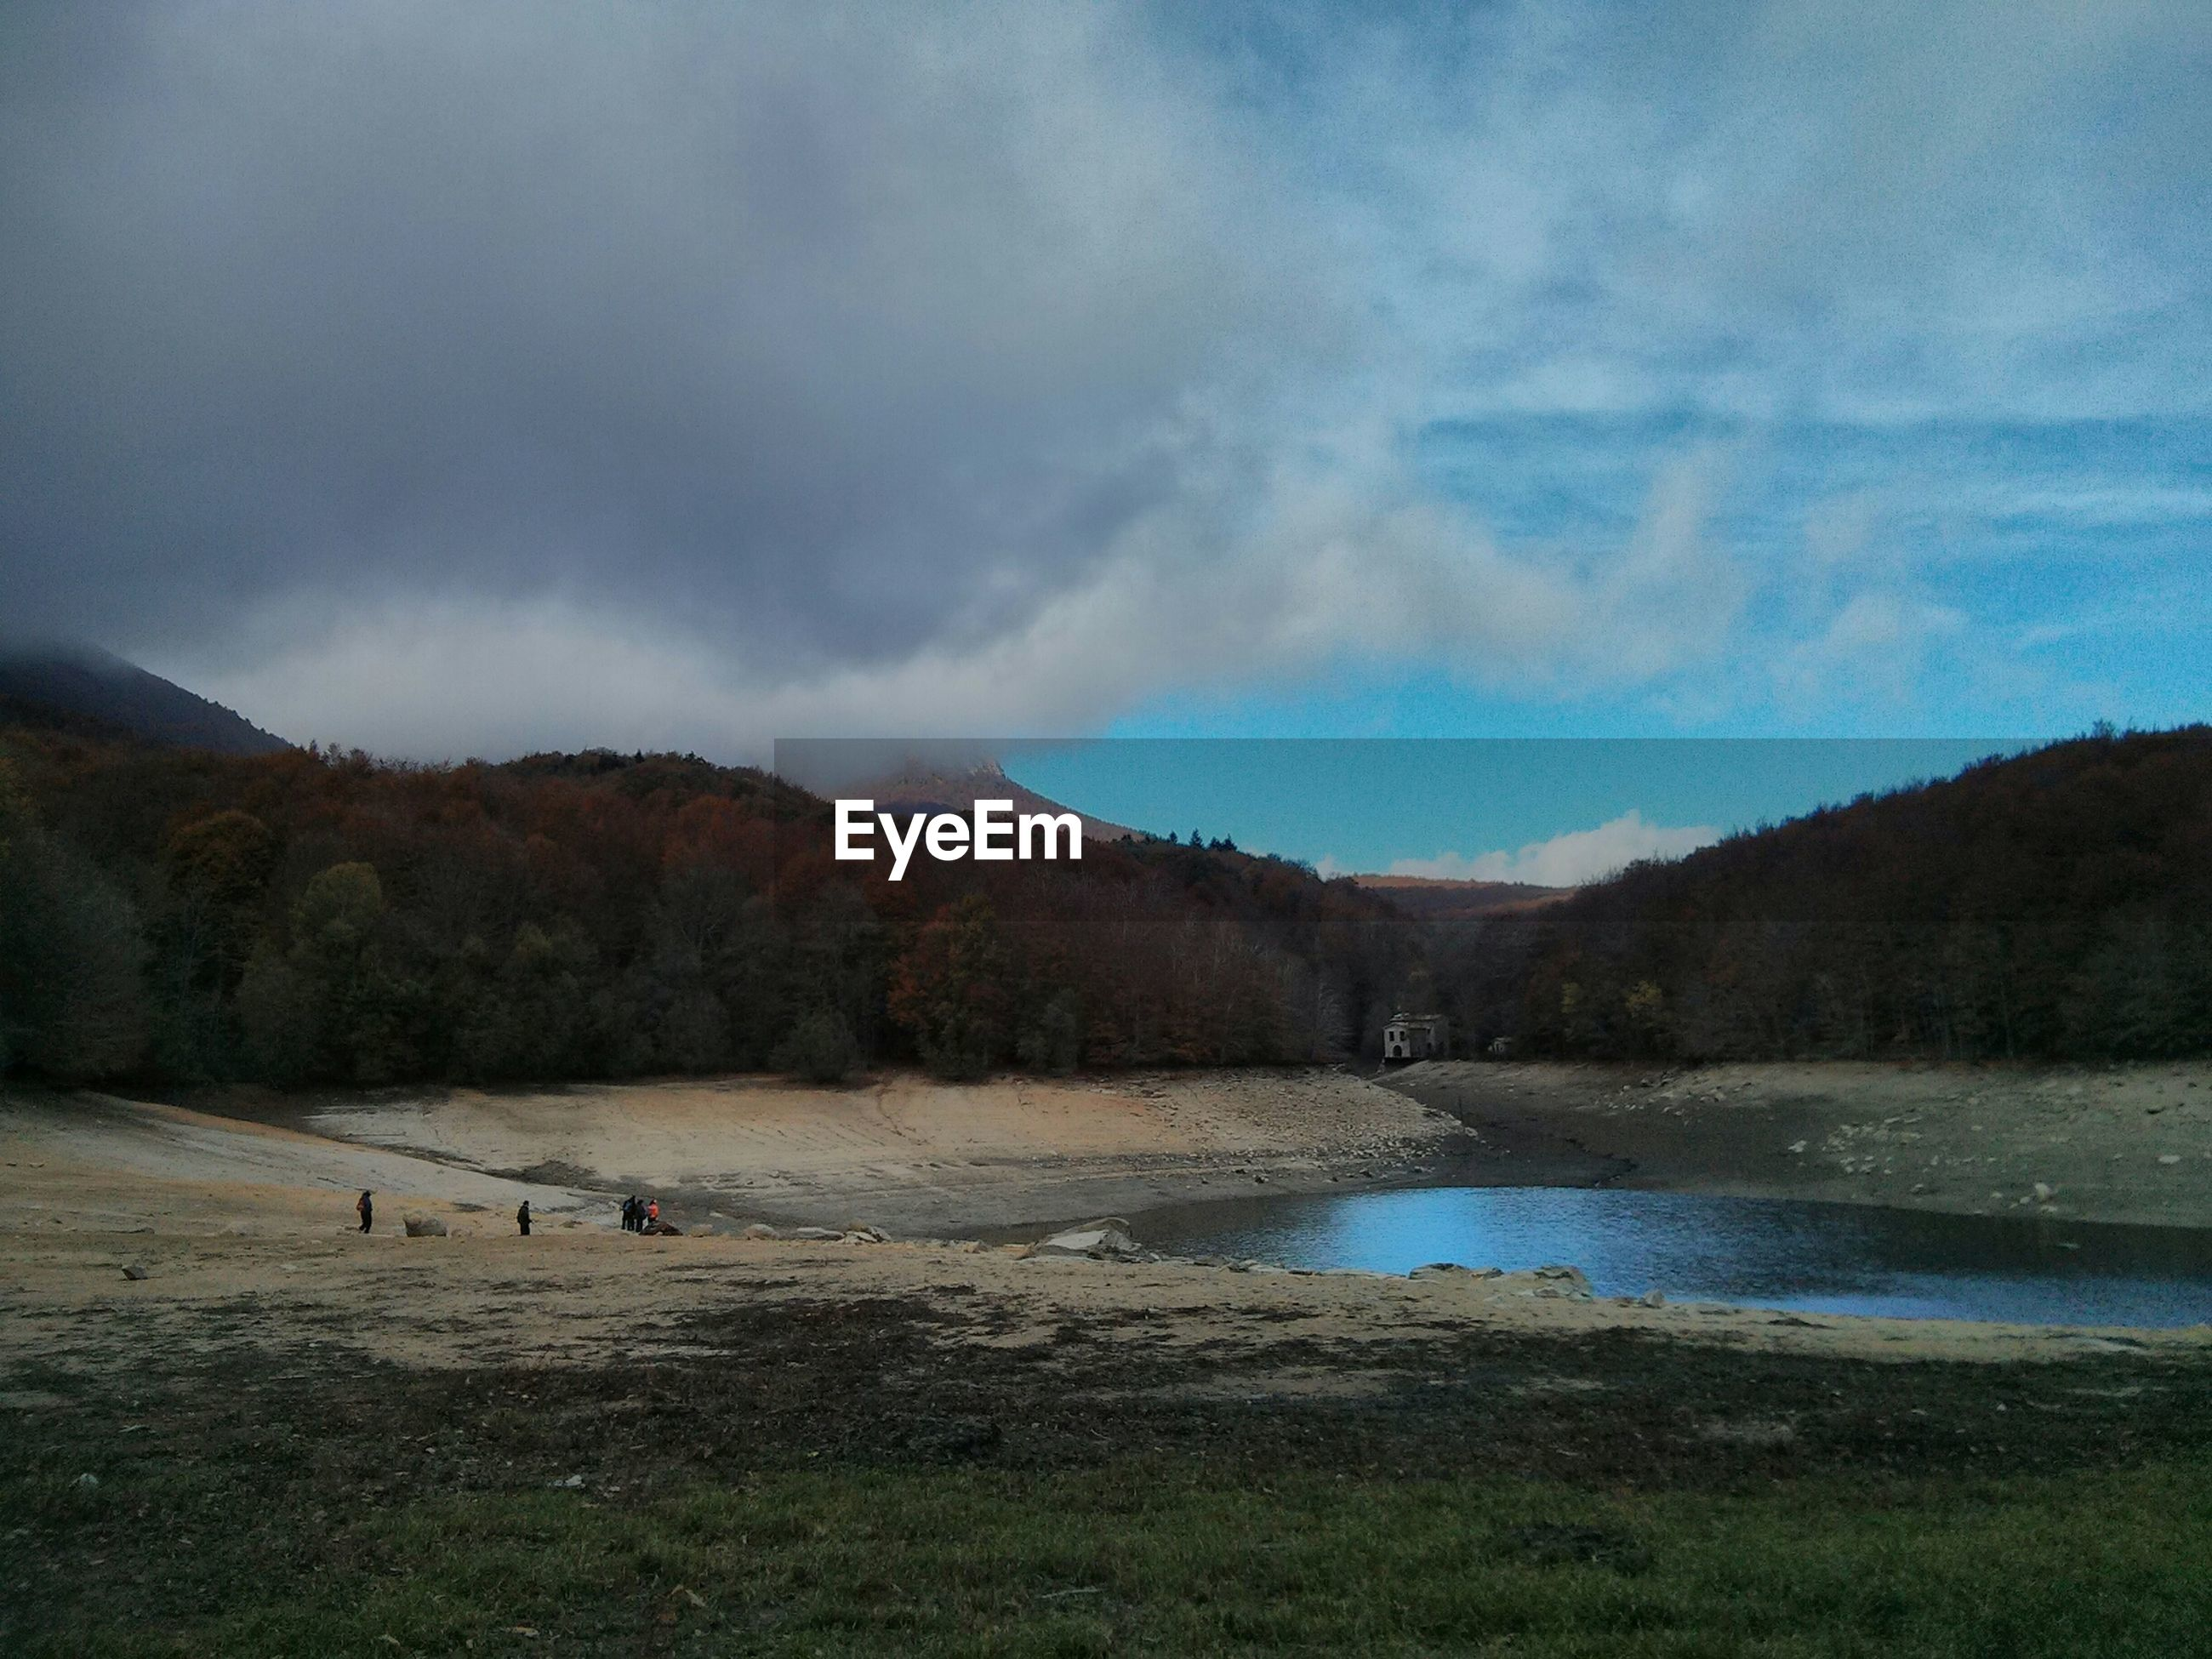 Scenic view of lake and trees against cloudy sky